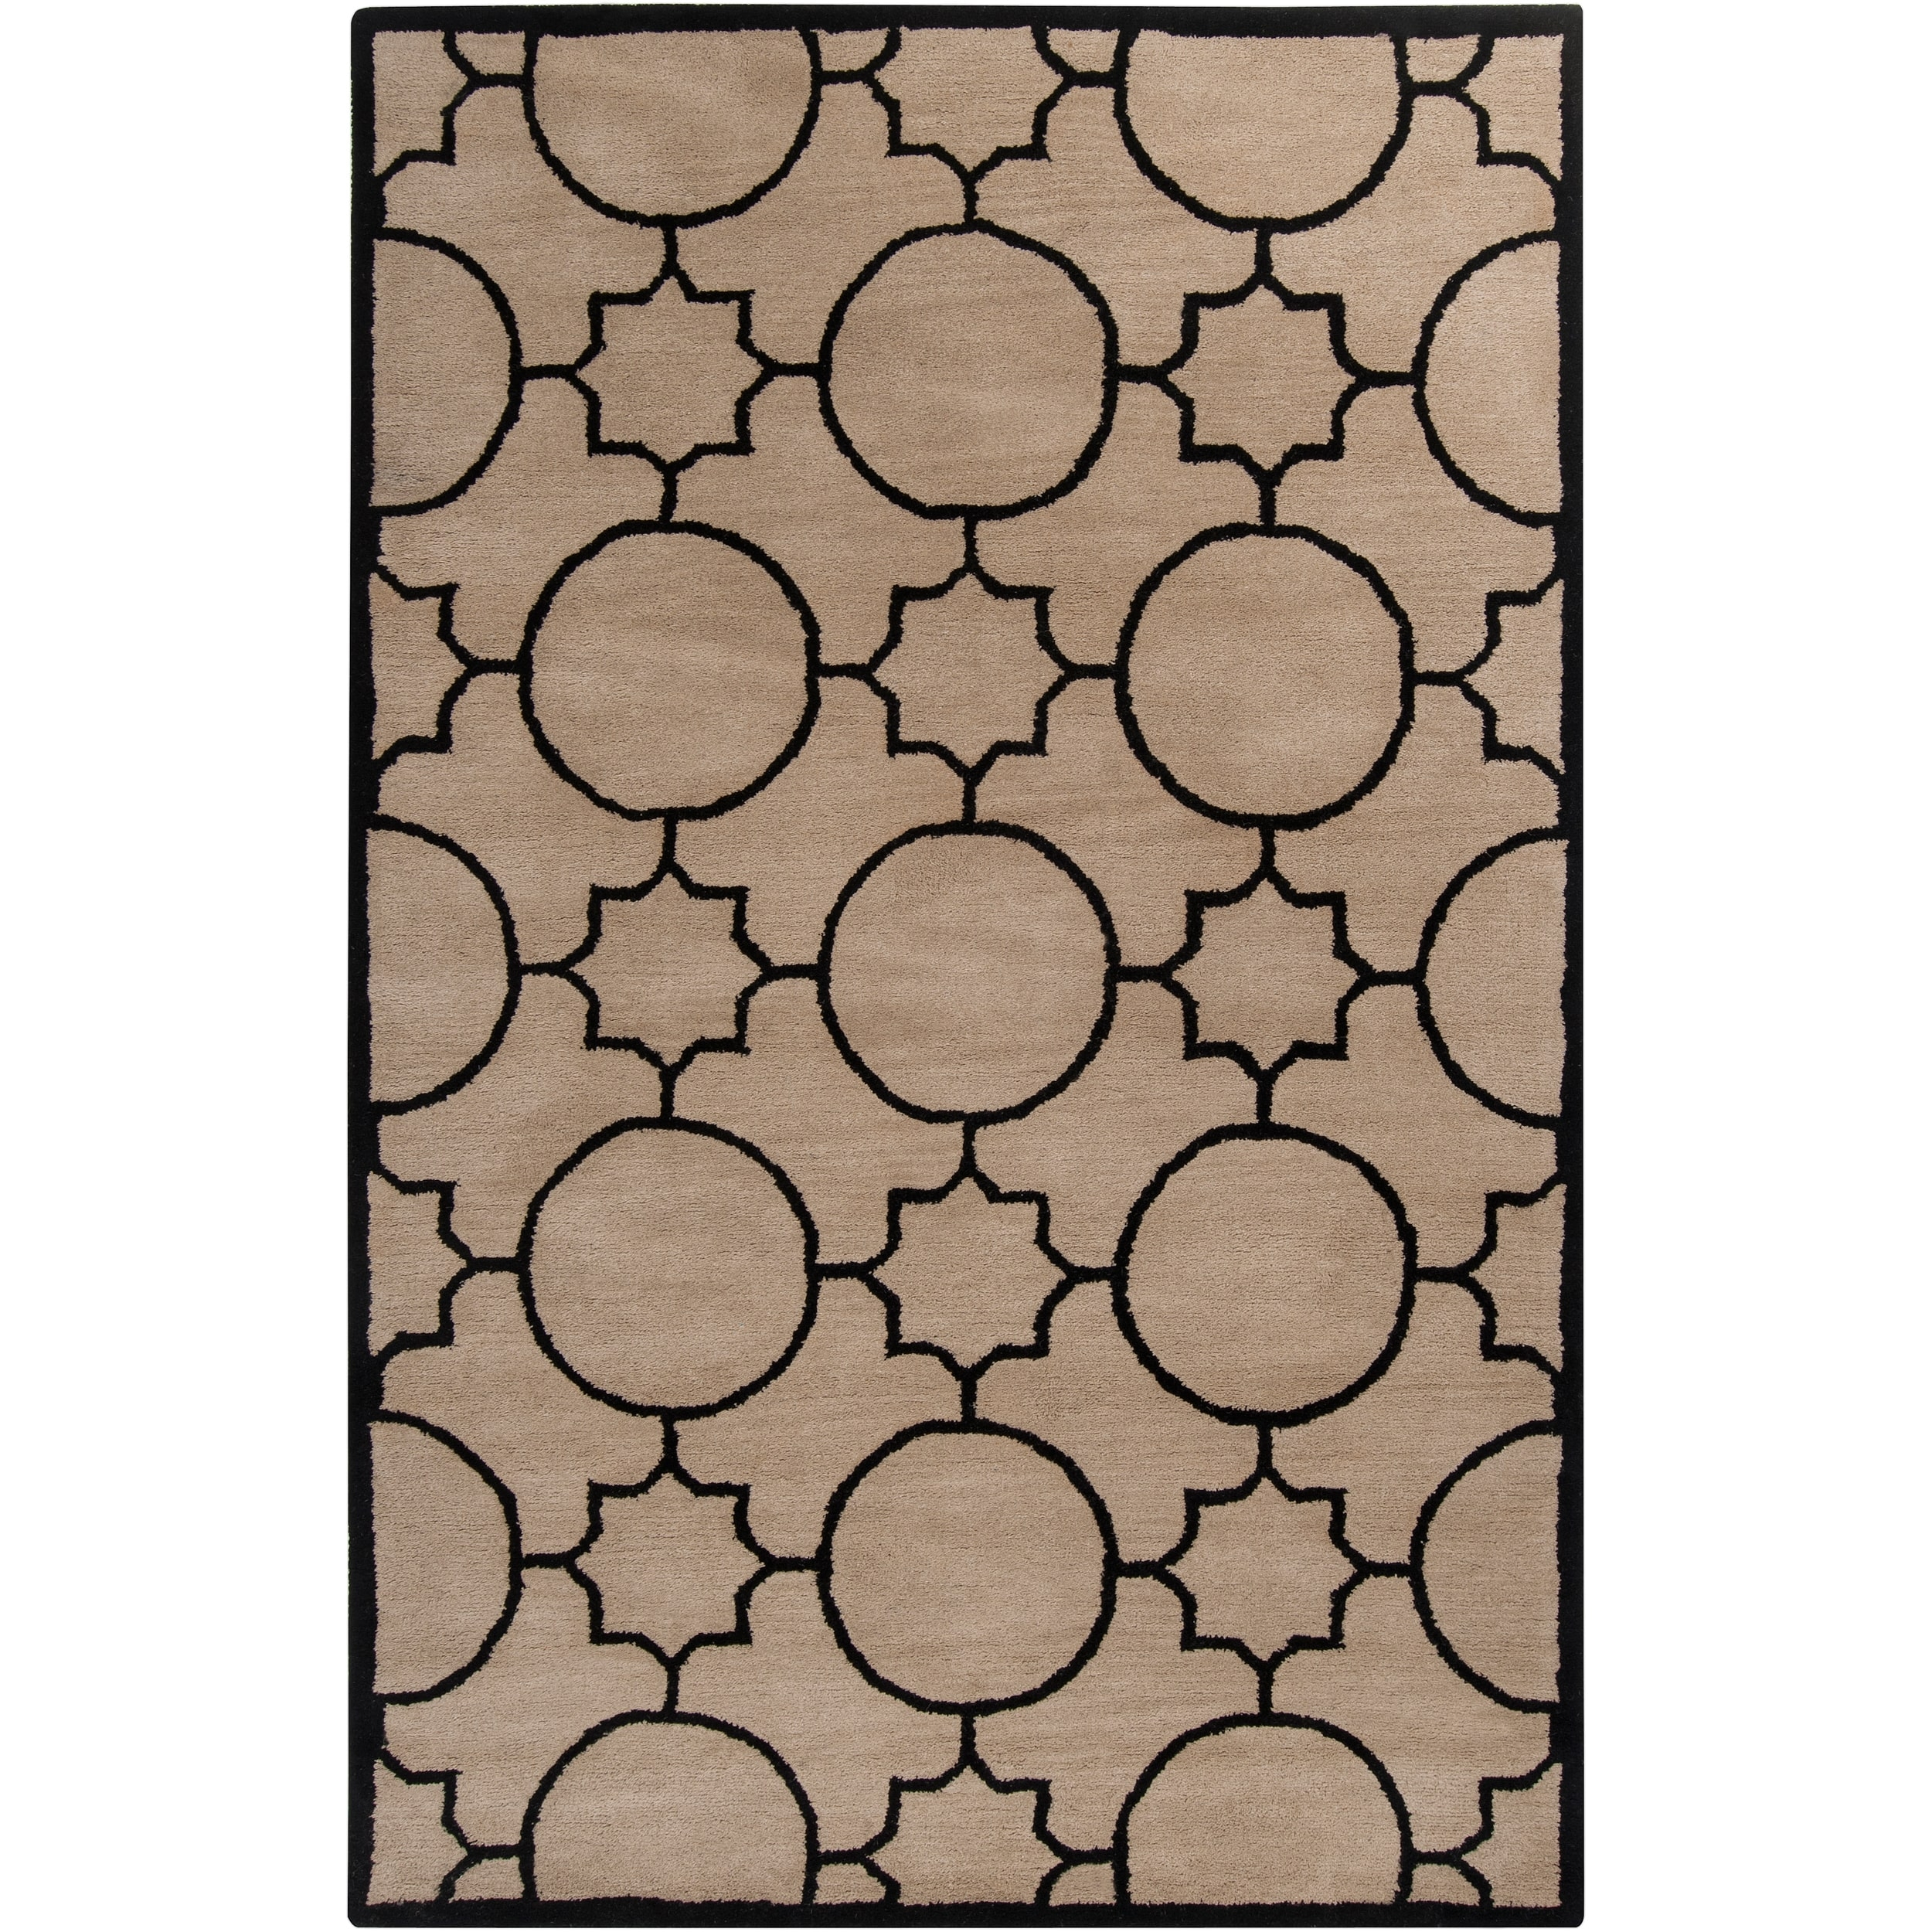 Hand Tufted Oscar Black Wool Area Rug 36 X 56 Free Shipping With Regard To Black Wool Area Rugs (#8 of 15)